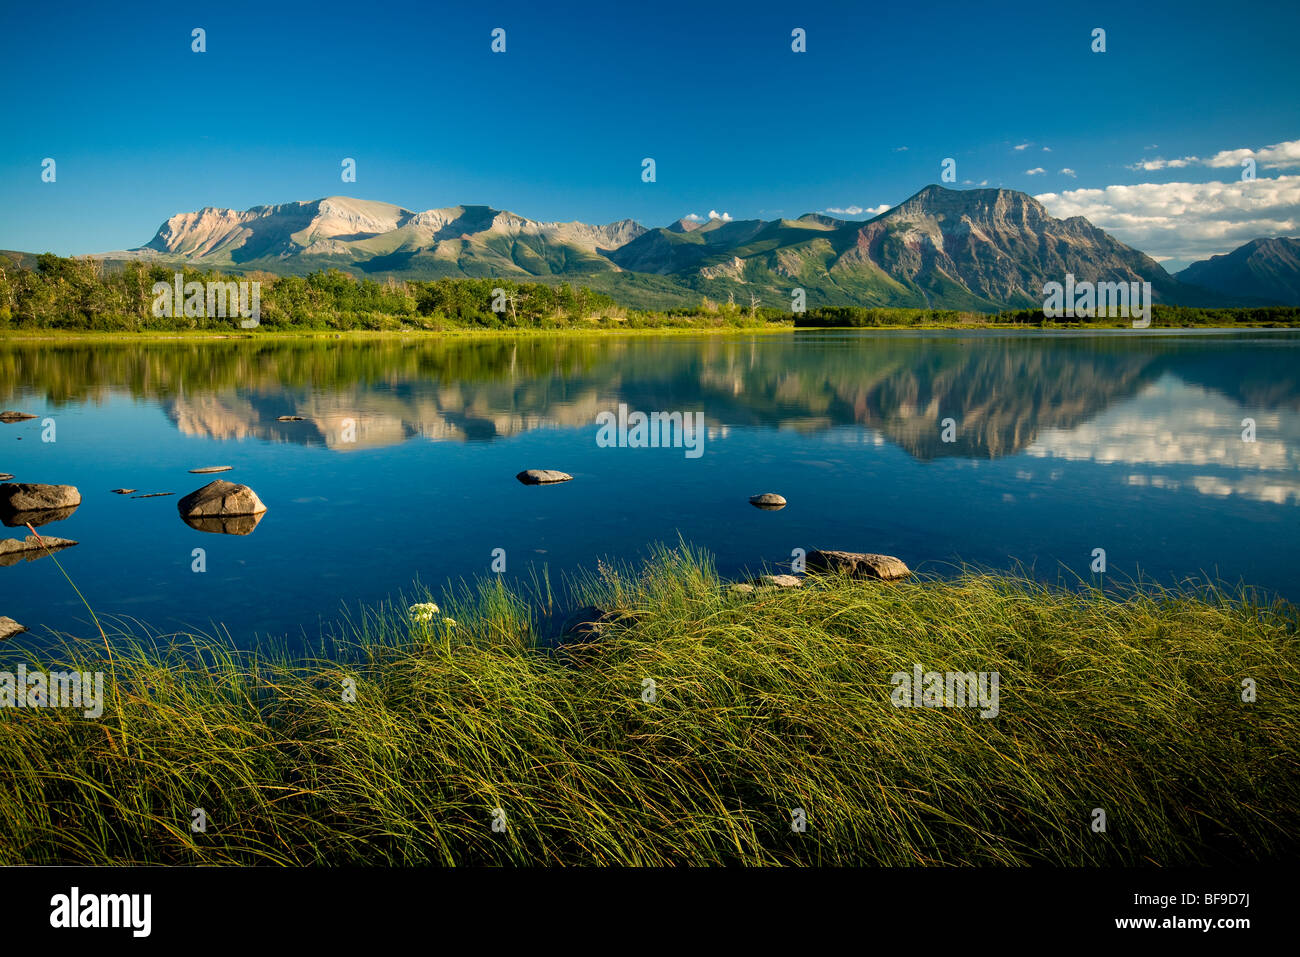 Sofa-Berg und Vimy Ridge angesehen von lower Waterton Lake, Waterton Lakes National Park, Alberta, Kanada Stockfoto